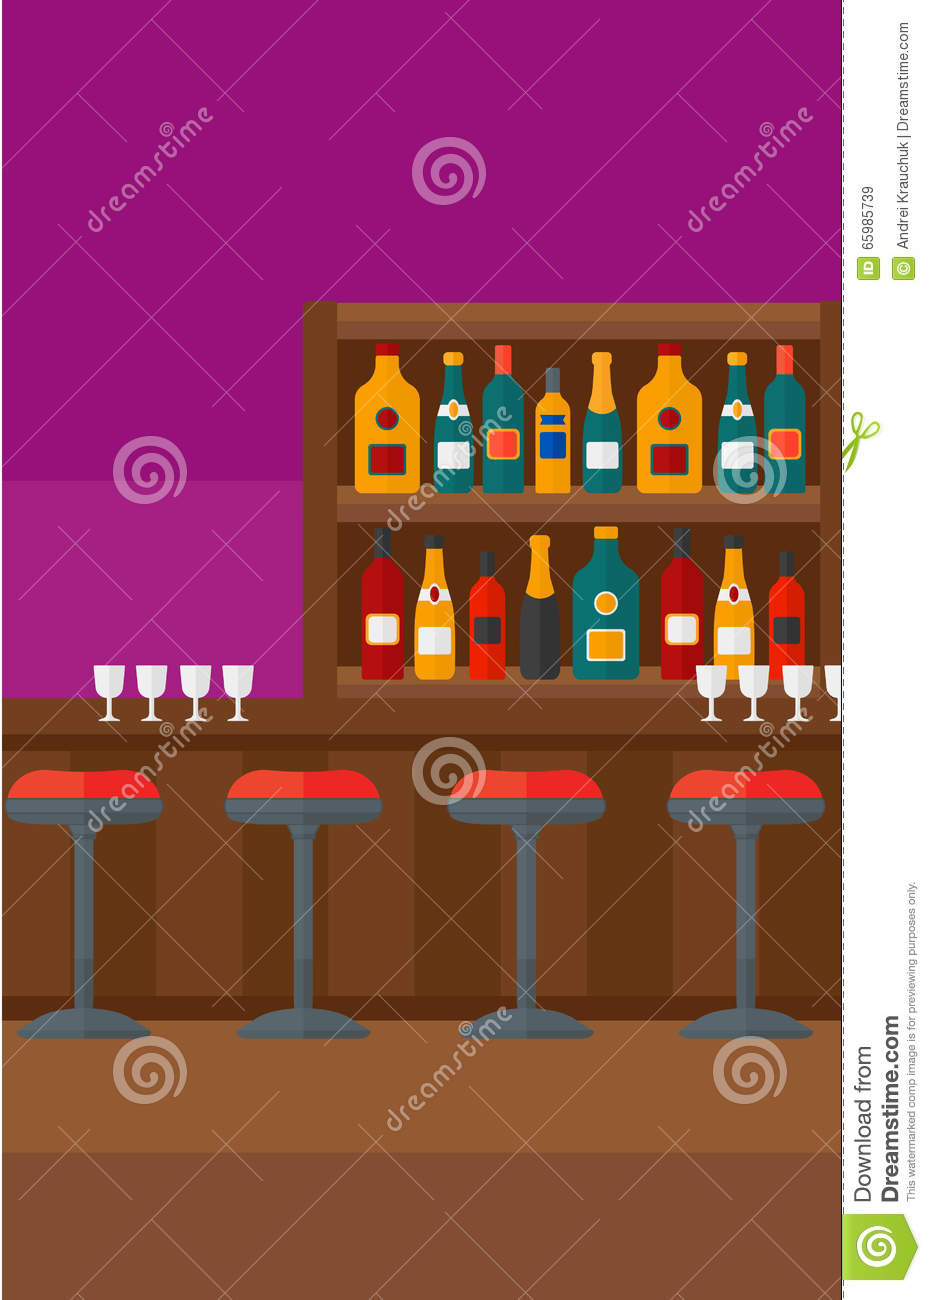 Cartoon kitchen counter gallery - Background Of Bar Counter Stock Vector